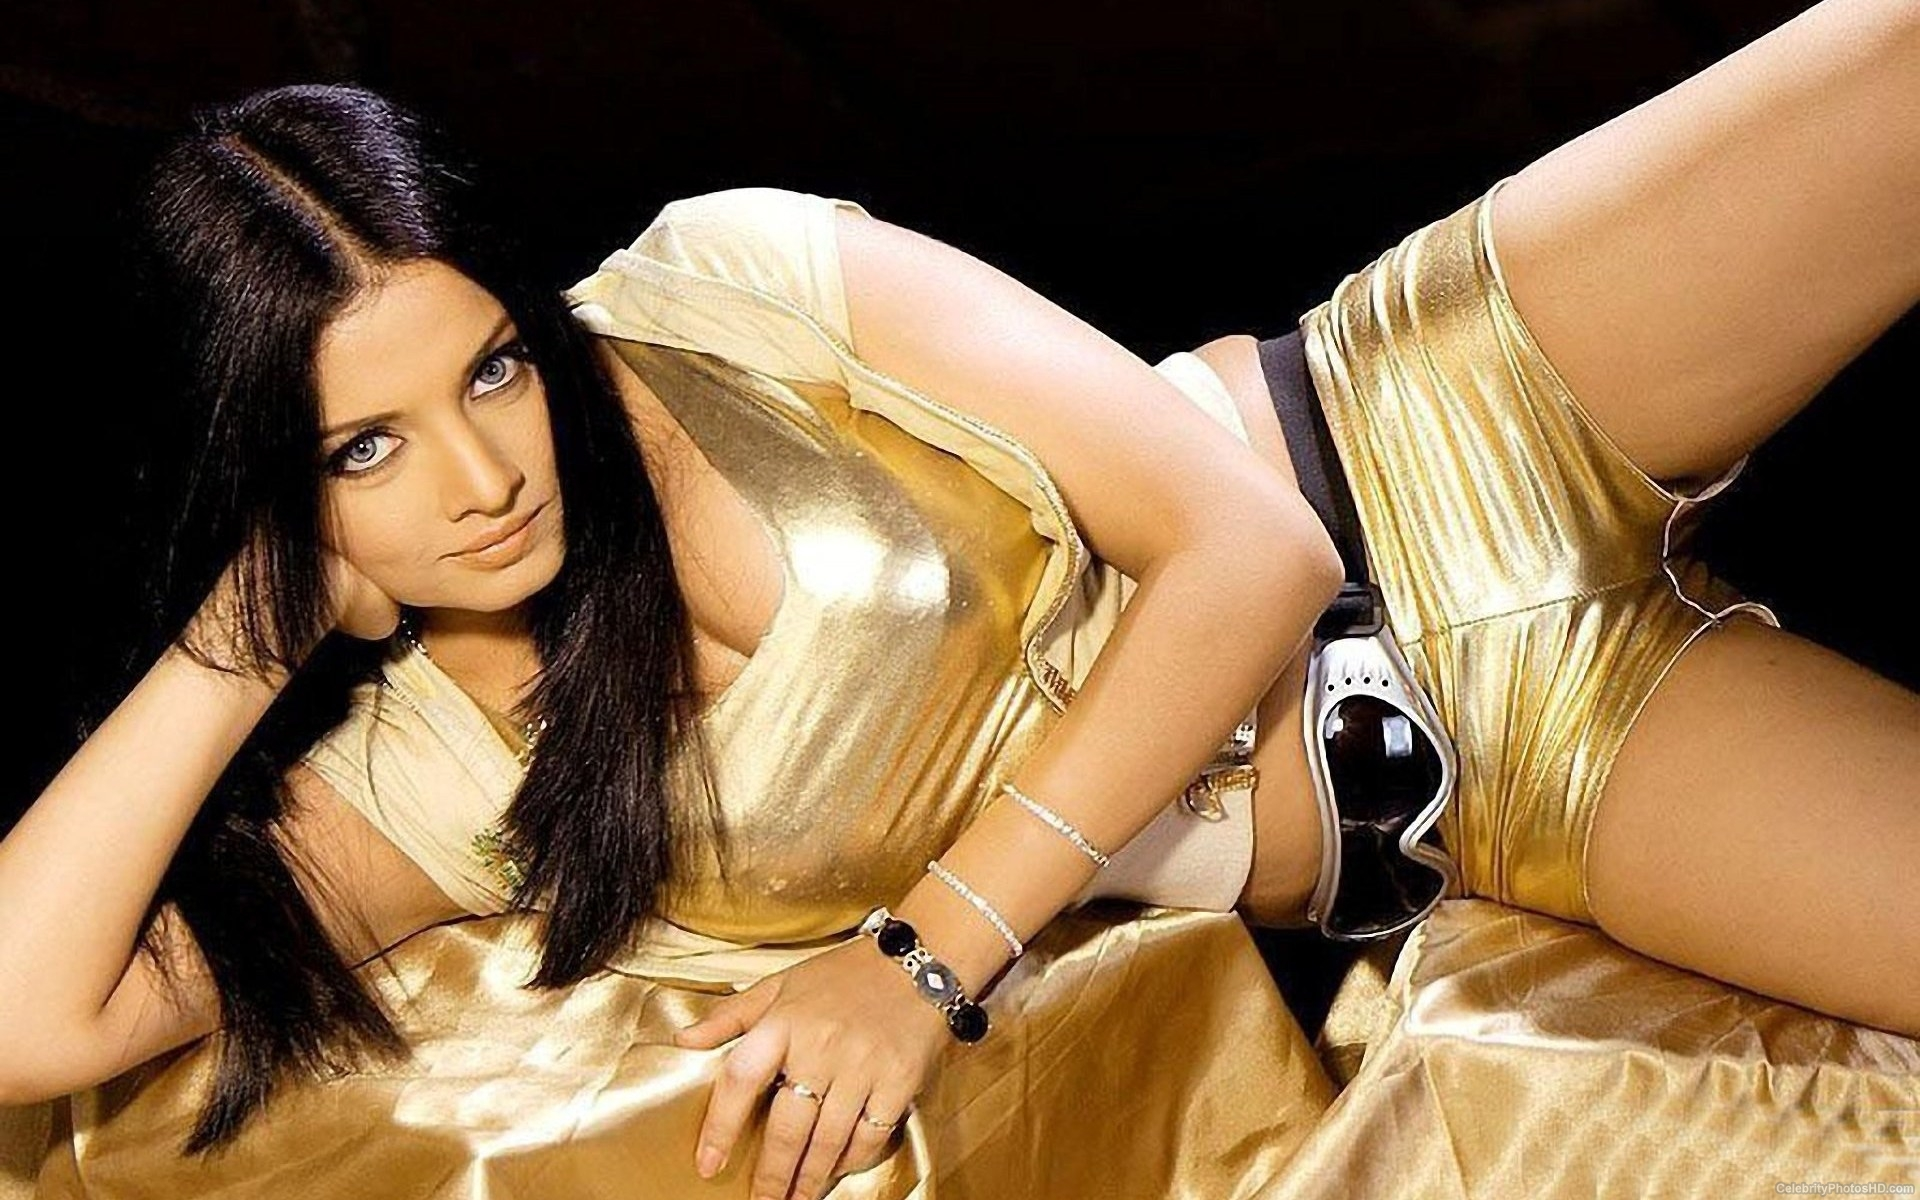 celina-jaitley-top-10-unseen-hot-photos-5